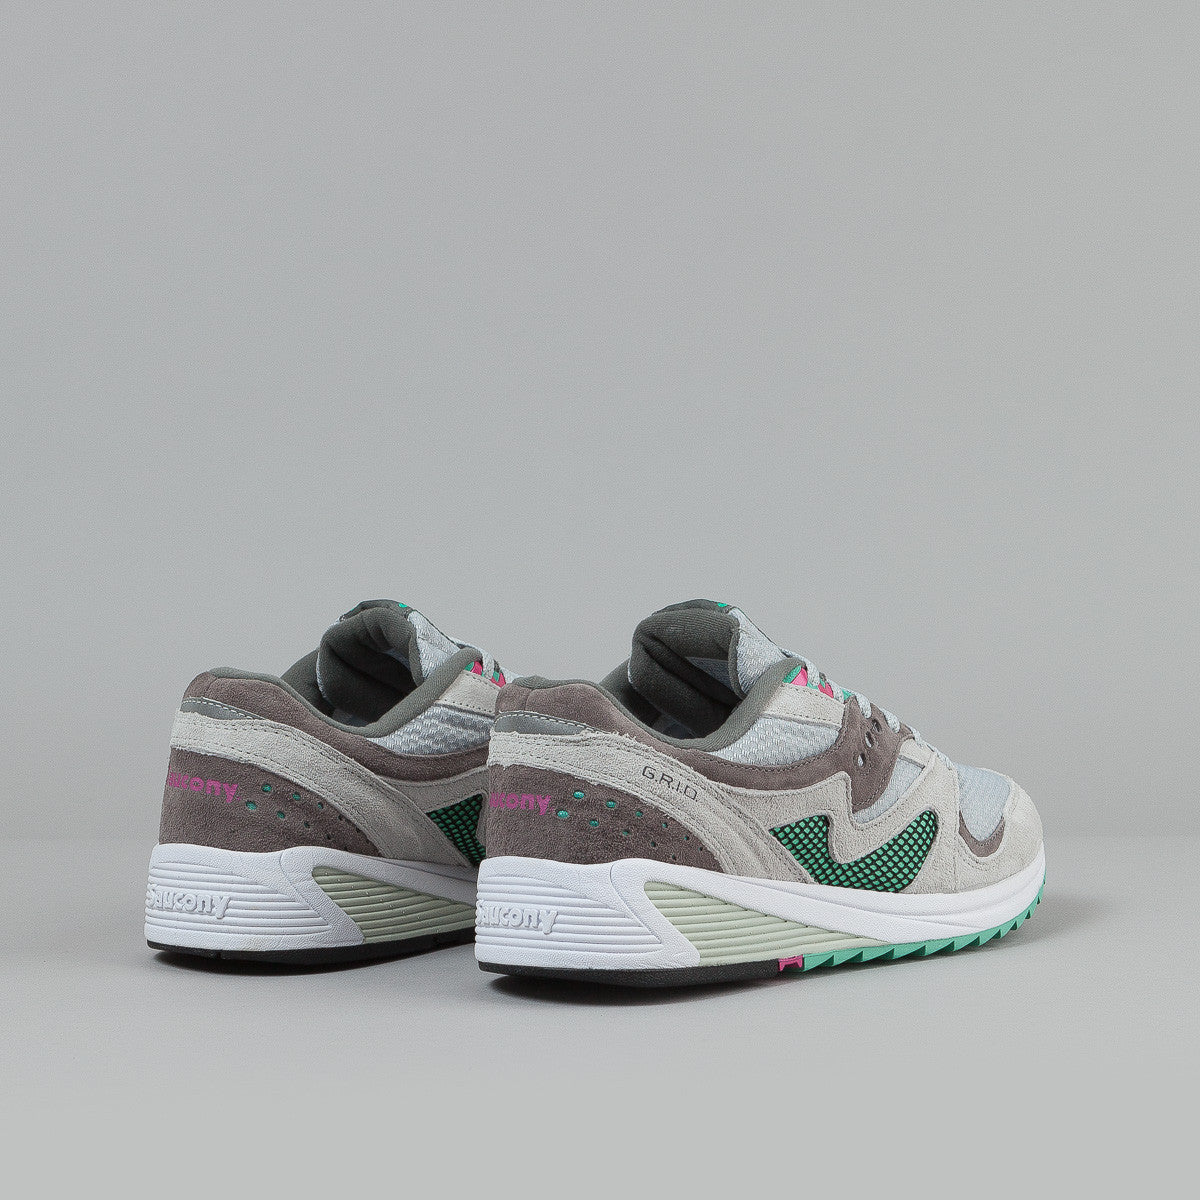 Saucony Grid 8000 CL Shoes - Light Grey / Dark Grey